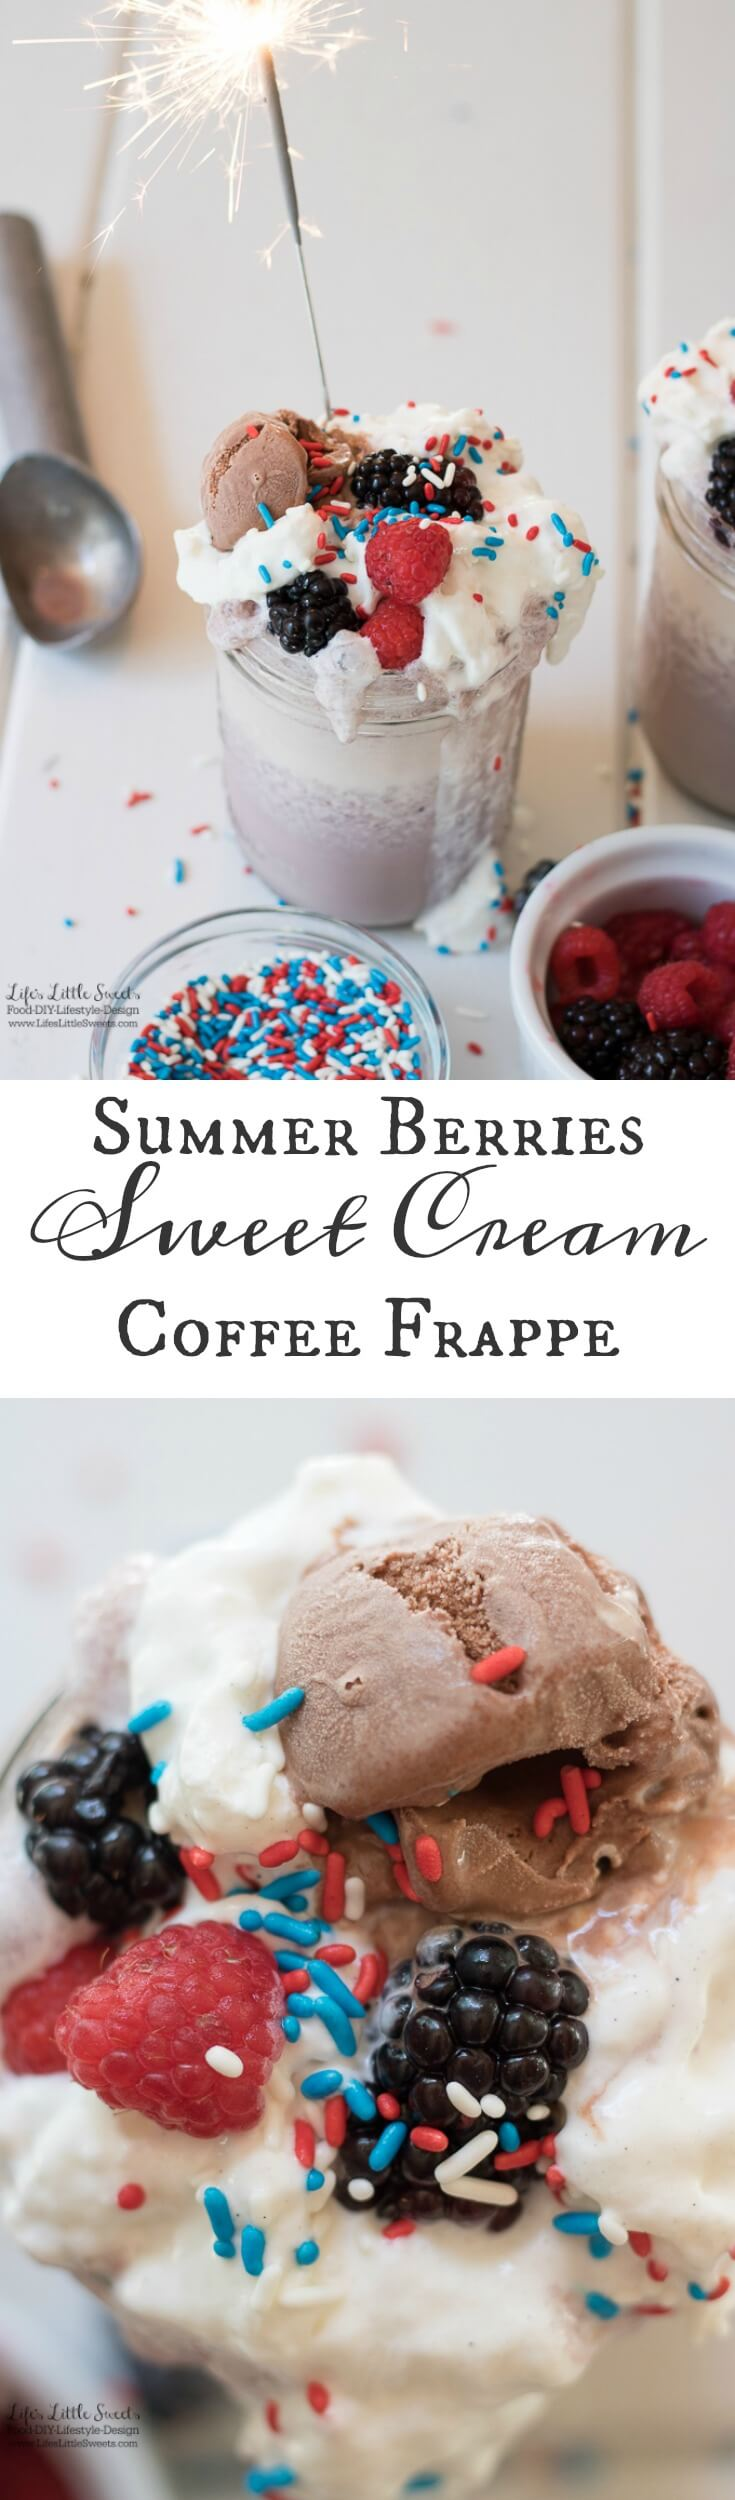 This Summer Berries Sweet Cream Coffee Frappe is the perfect sweet, refreshing and frozen drink for 4th of July or anytime during the Summer! www.lifeslittlesweets.com #ad #collectivebias #FrappeYourWay